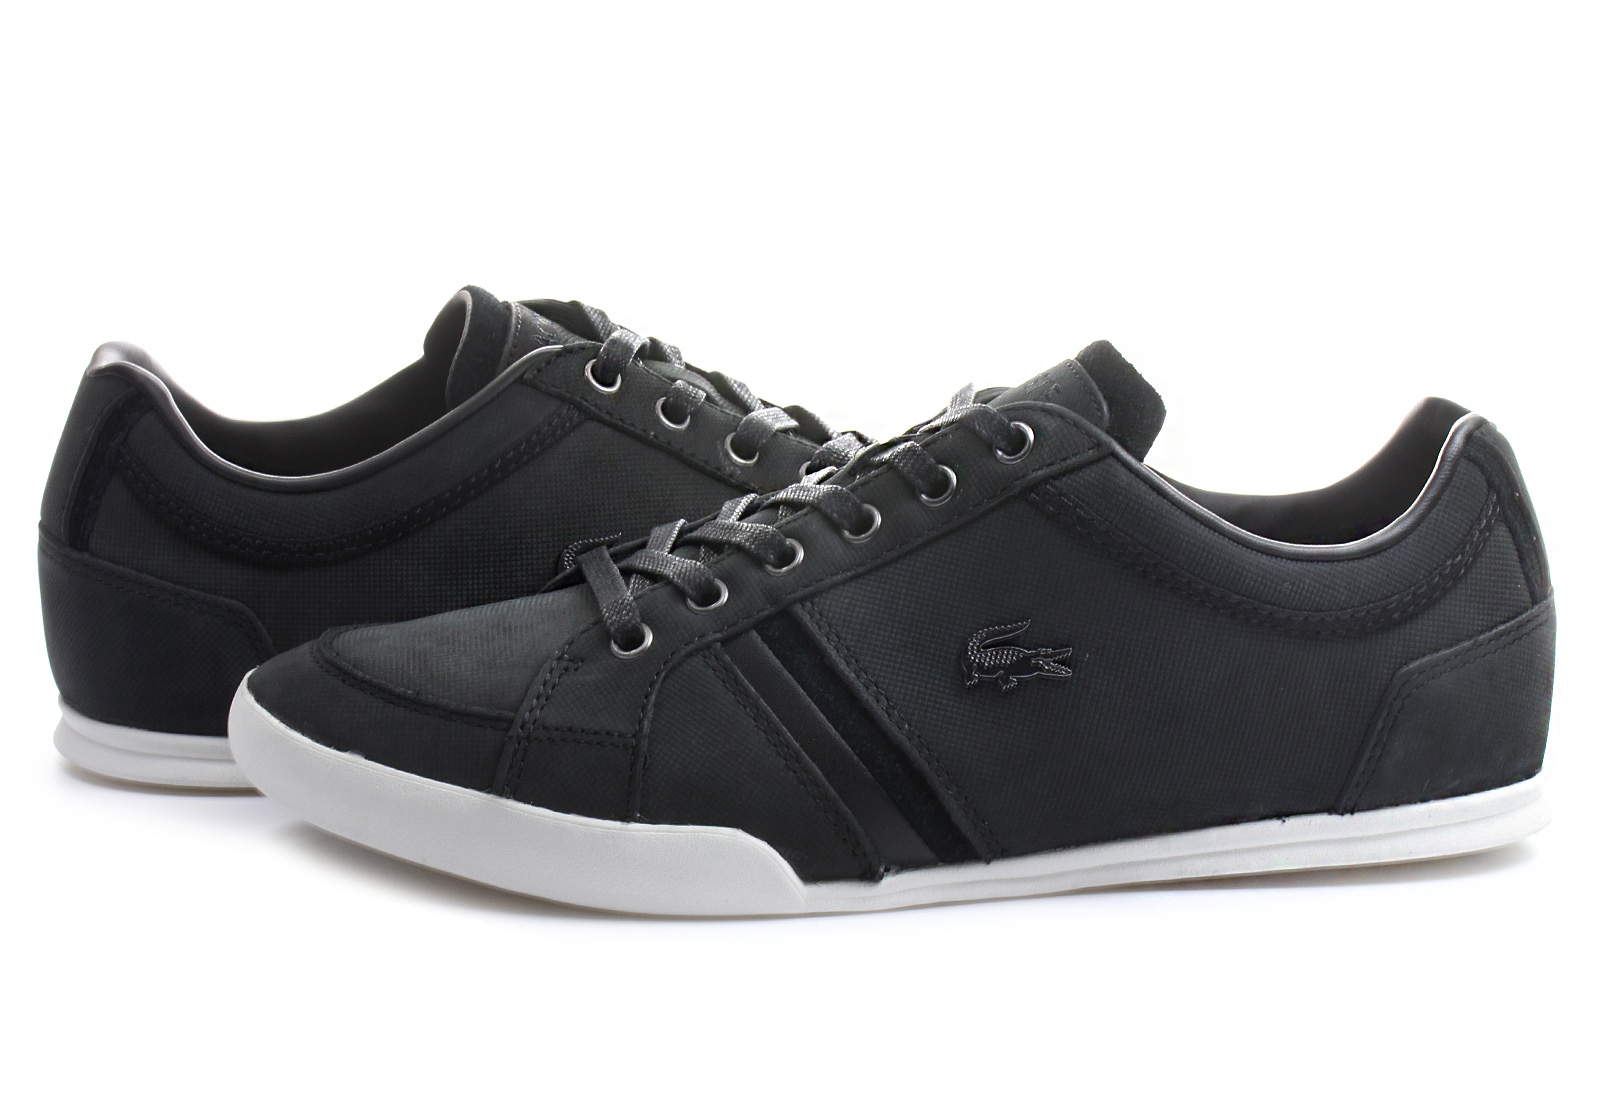 Lacoste Shoes - Rayford - 141srm1230-024